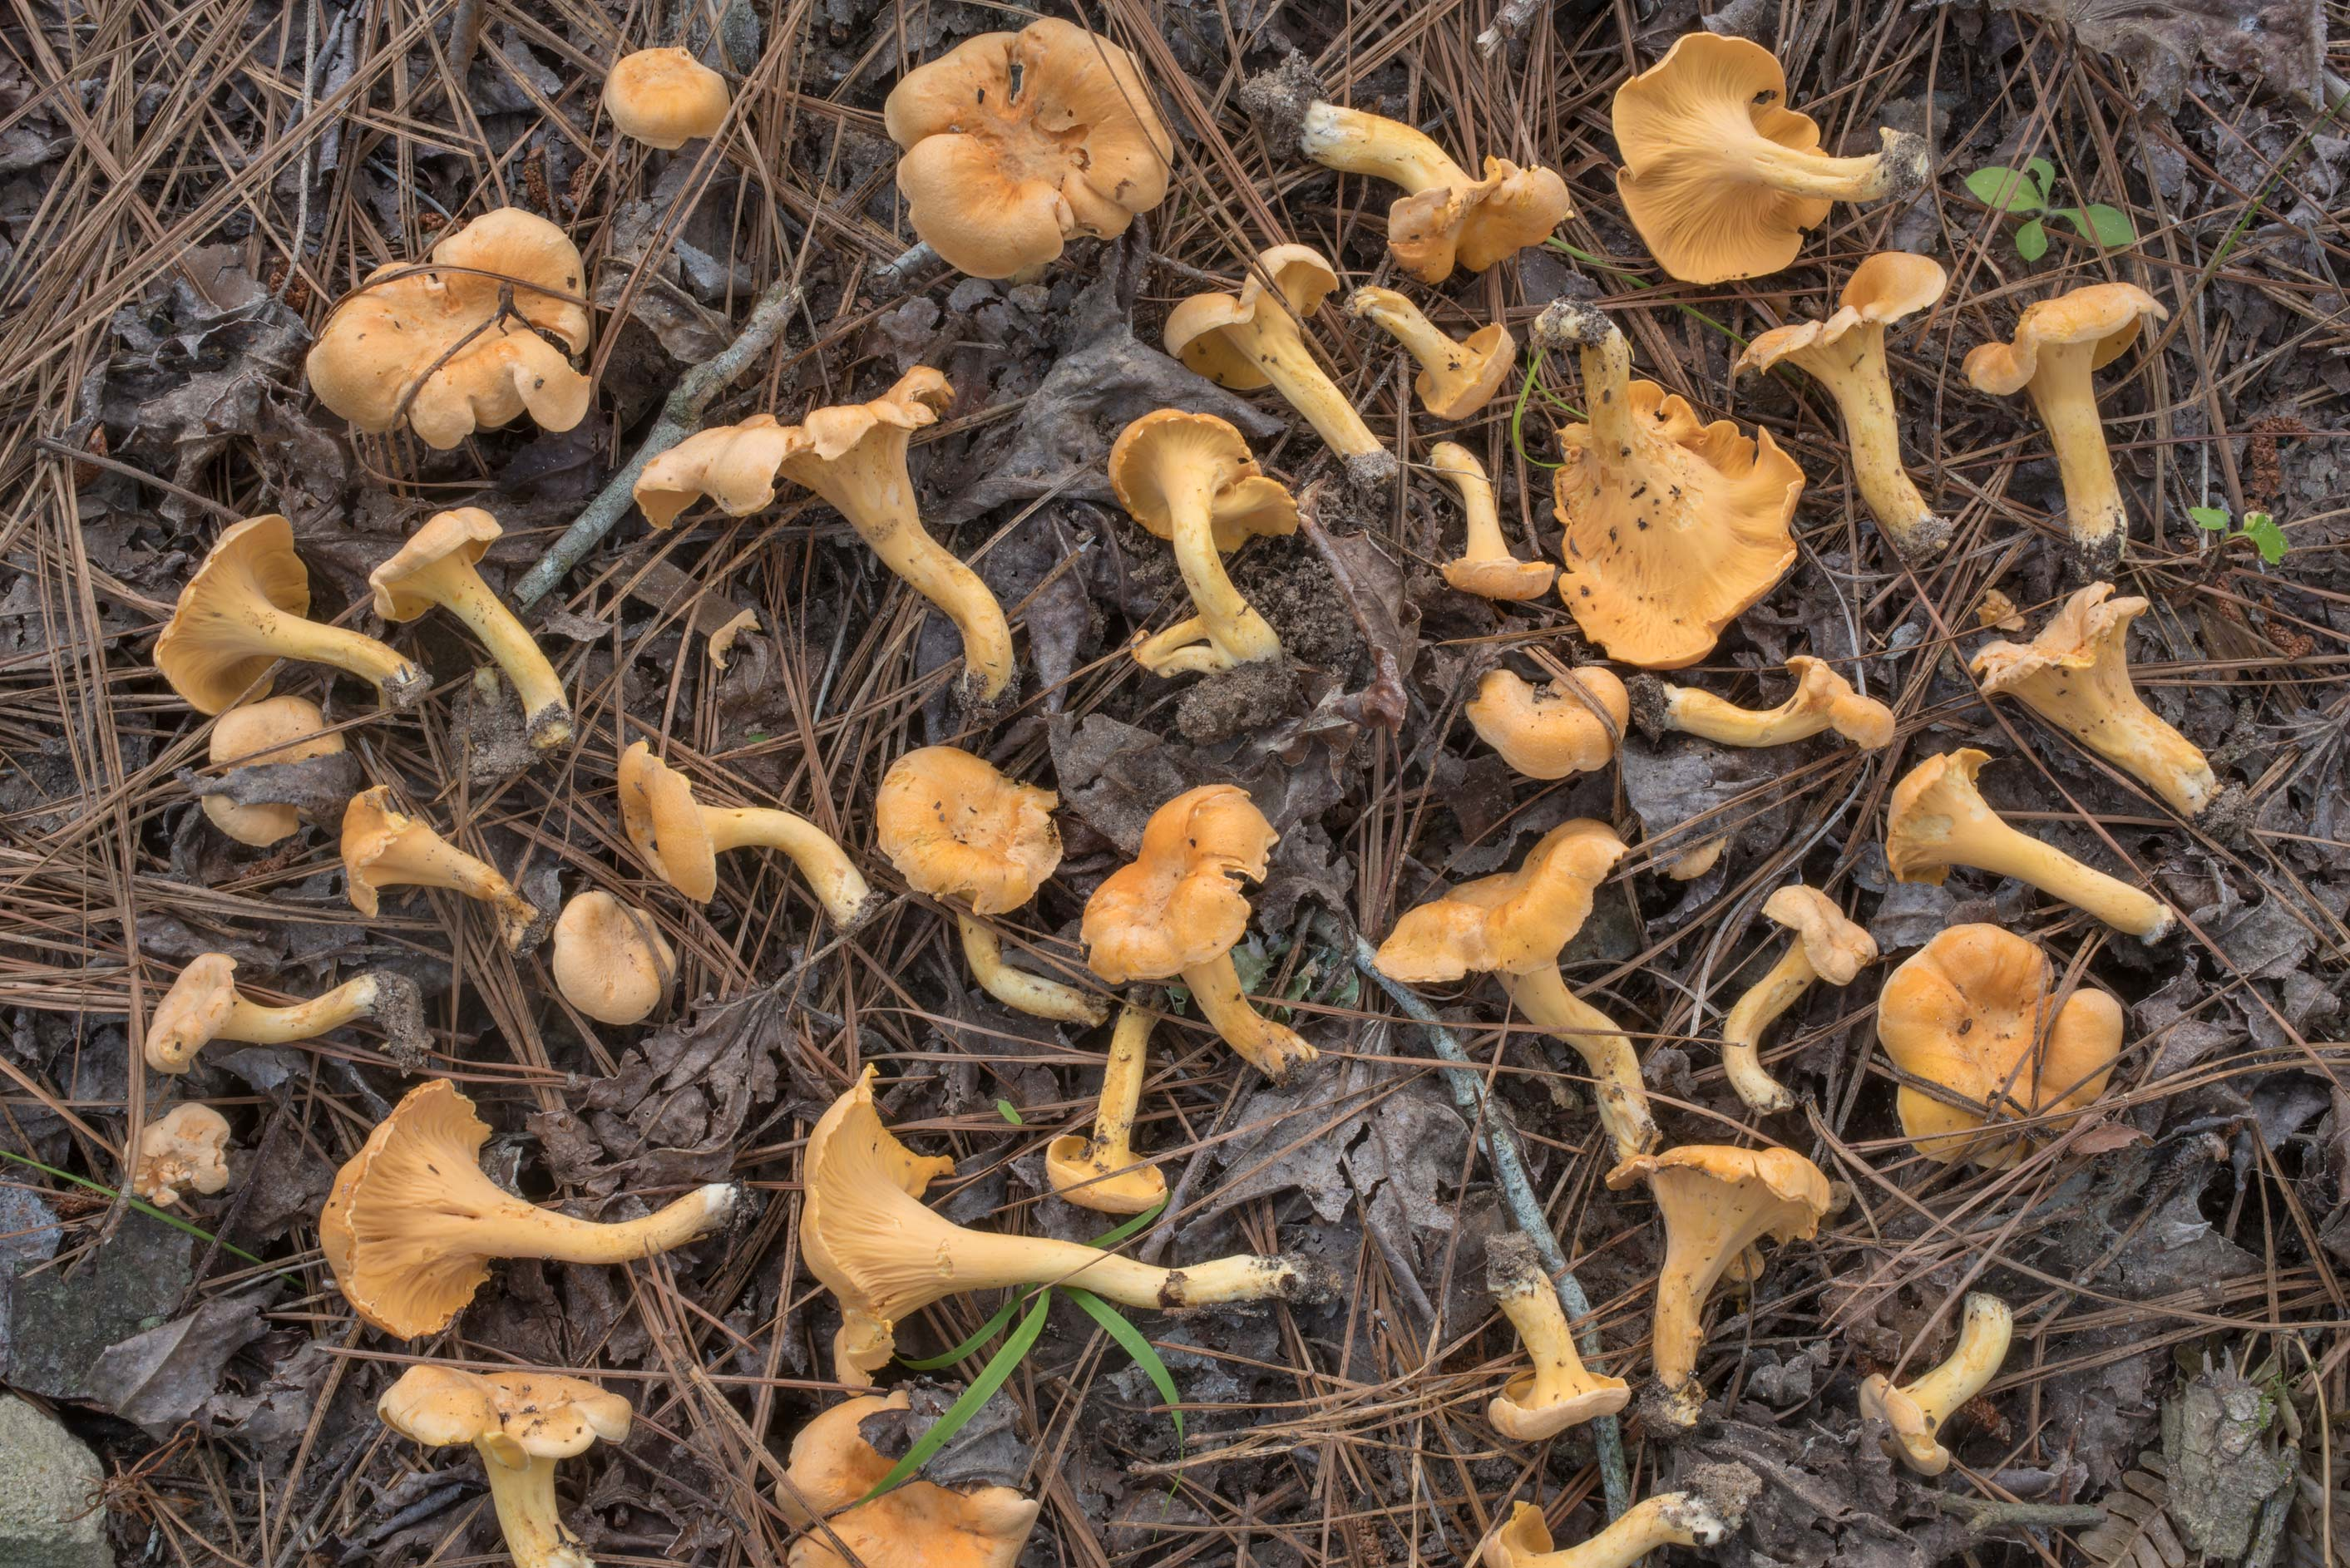 Large number of smooth chanterelle mushrooms...in Sam Houston National Forest. Texas